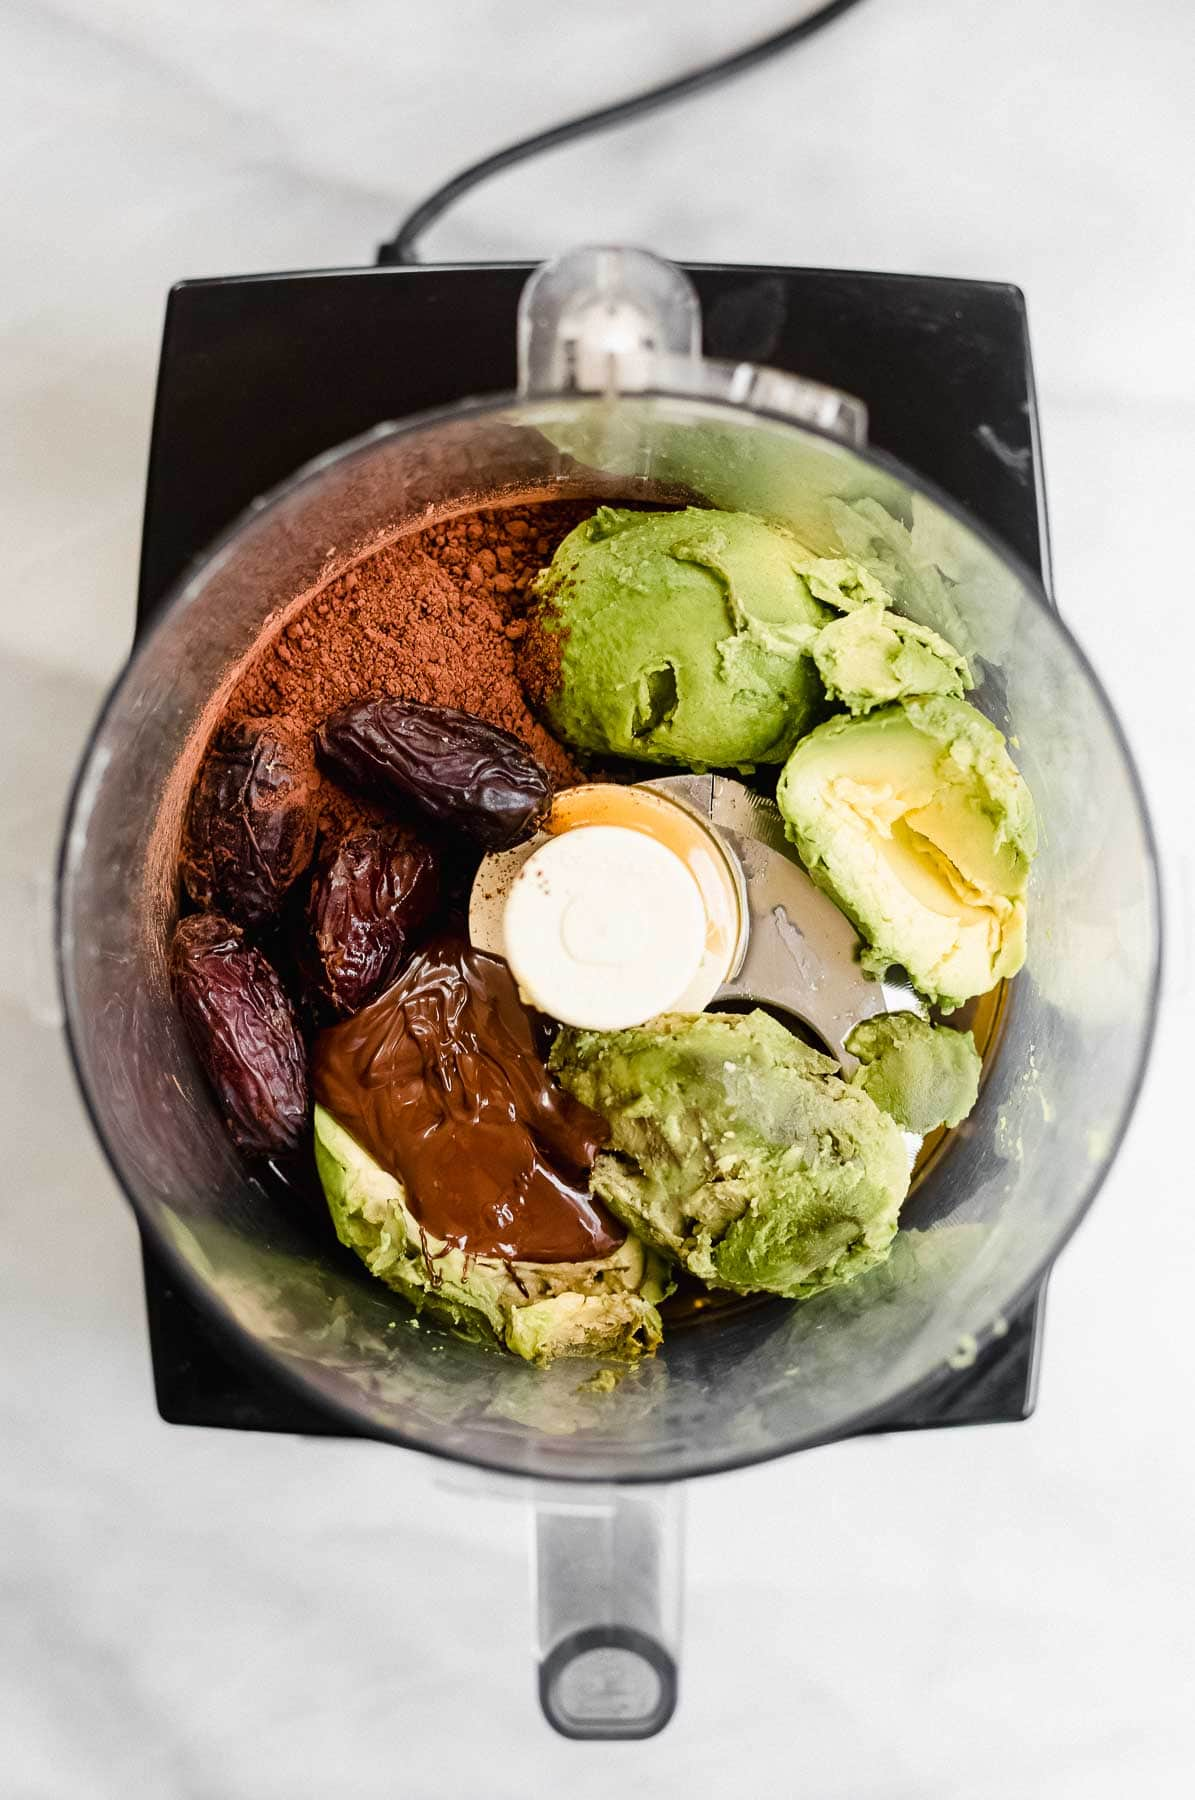 Ingredients for the avocado mousse in a food processor.